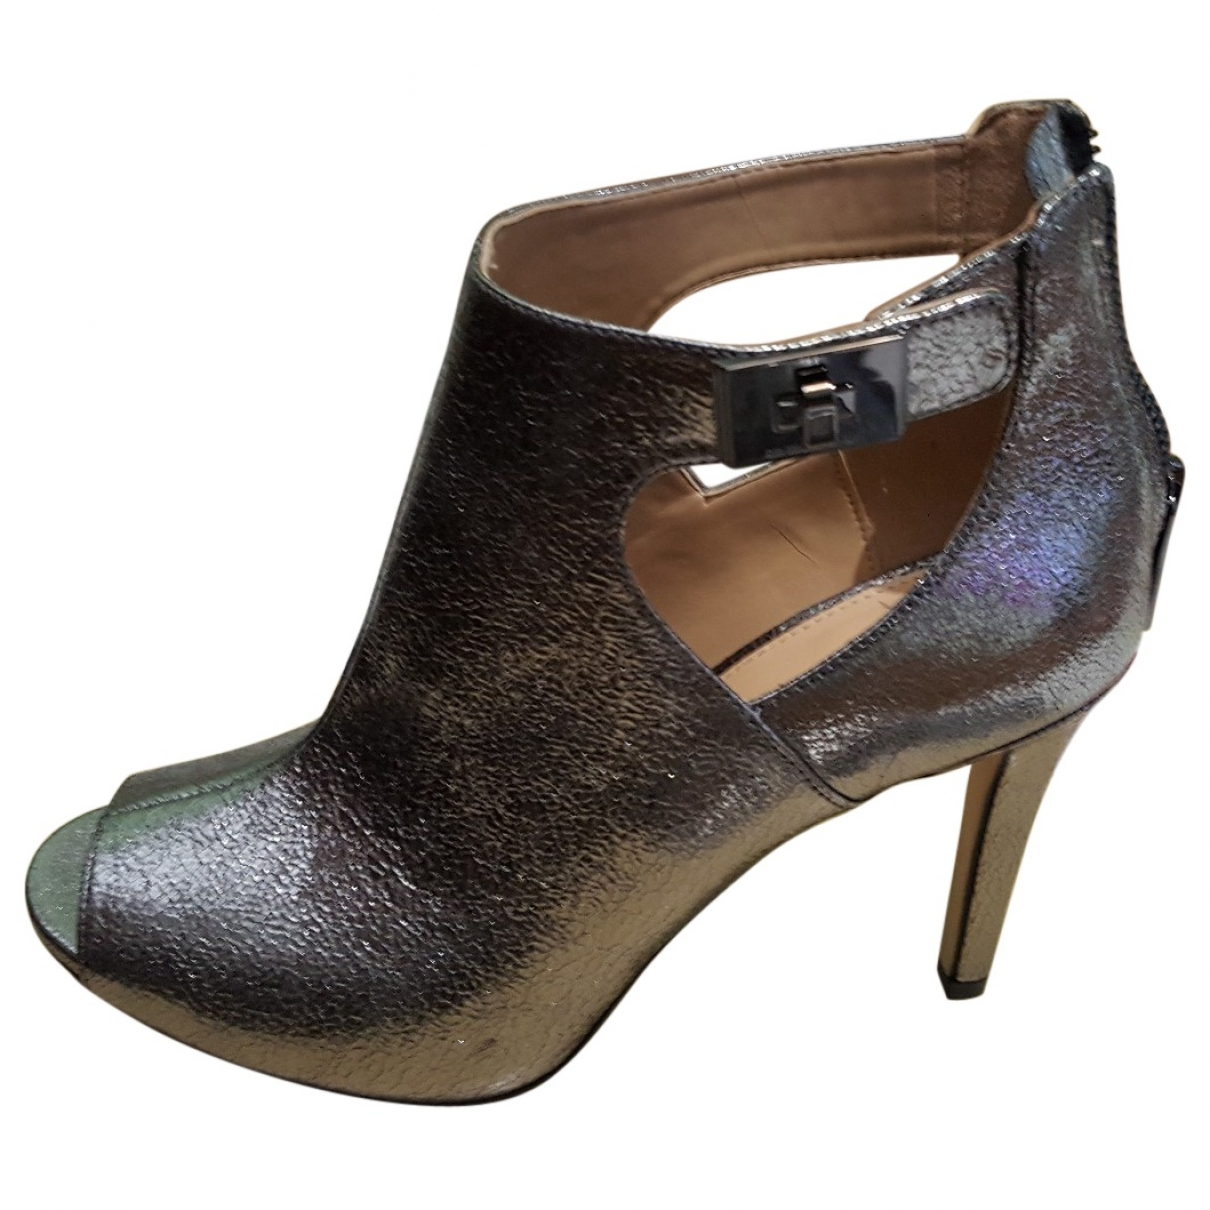 Michael Kors \N Silver Leather Ankle boots for Women 8 US